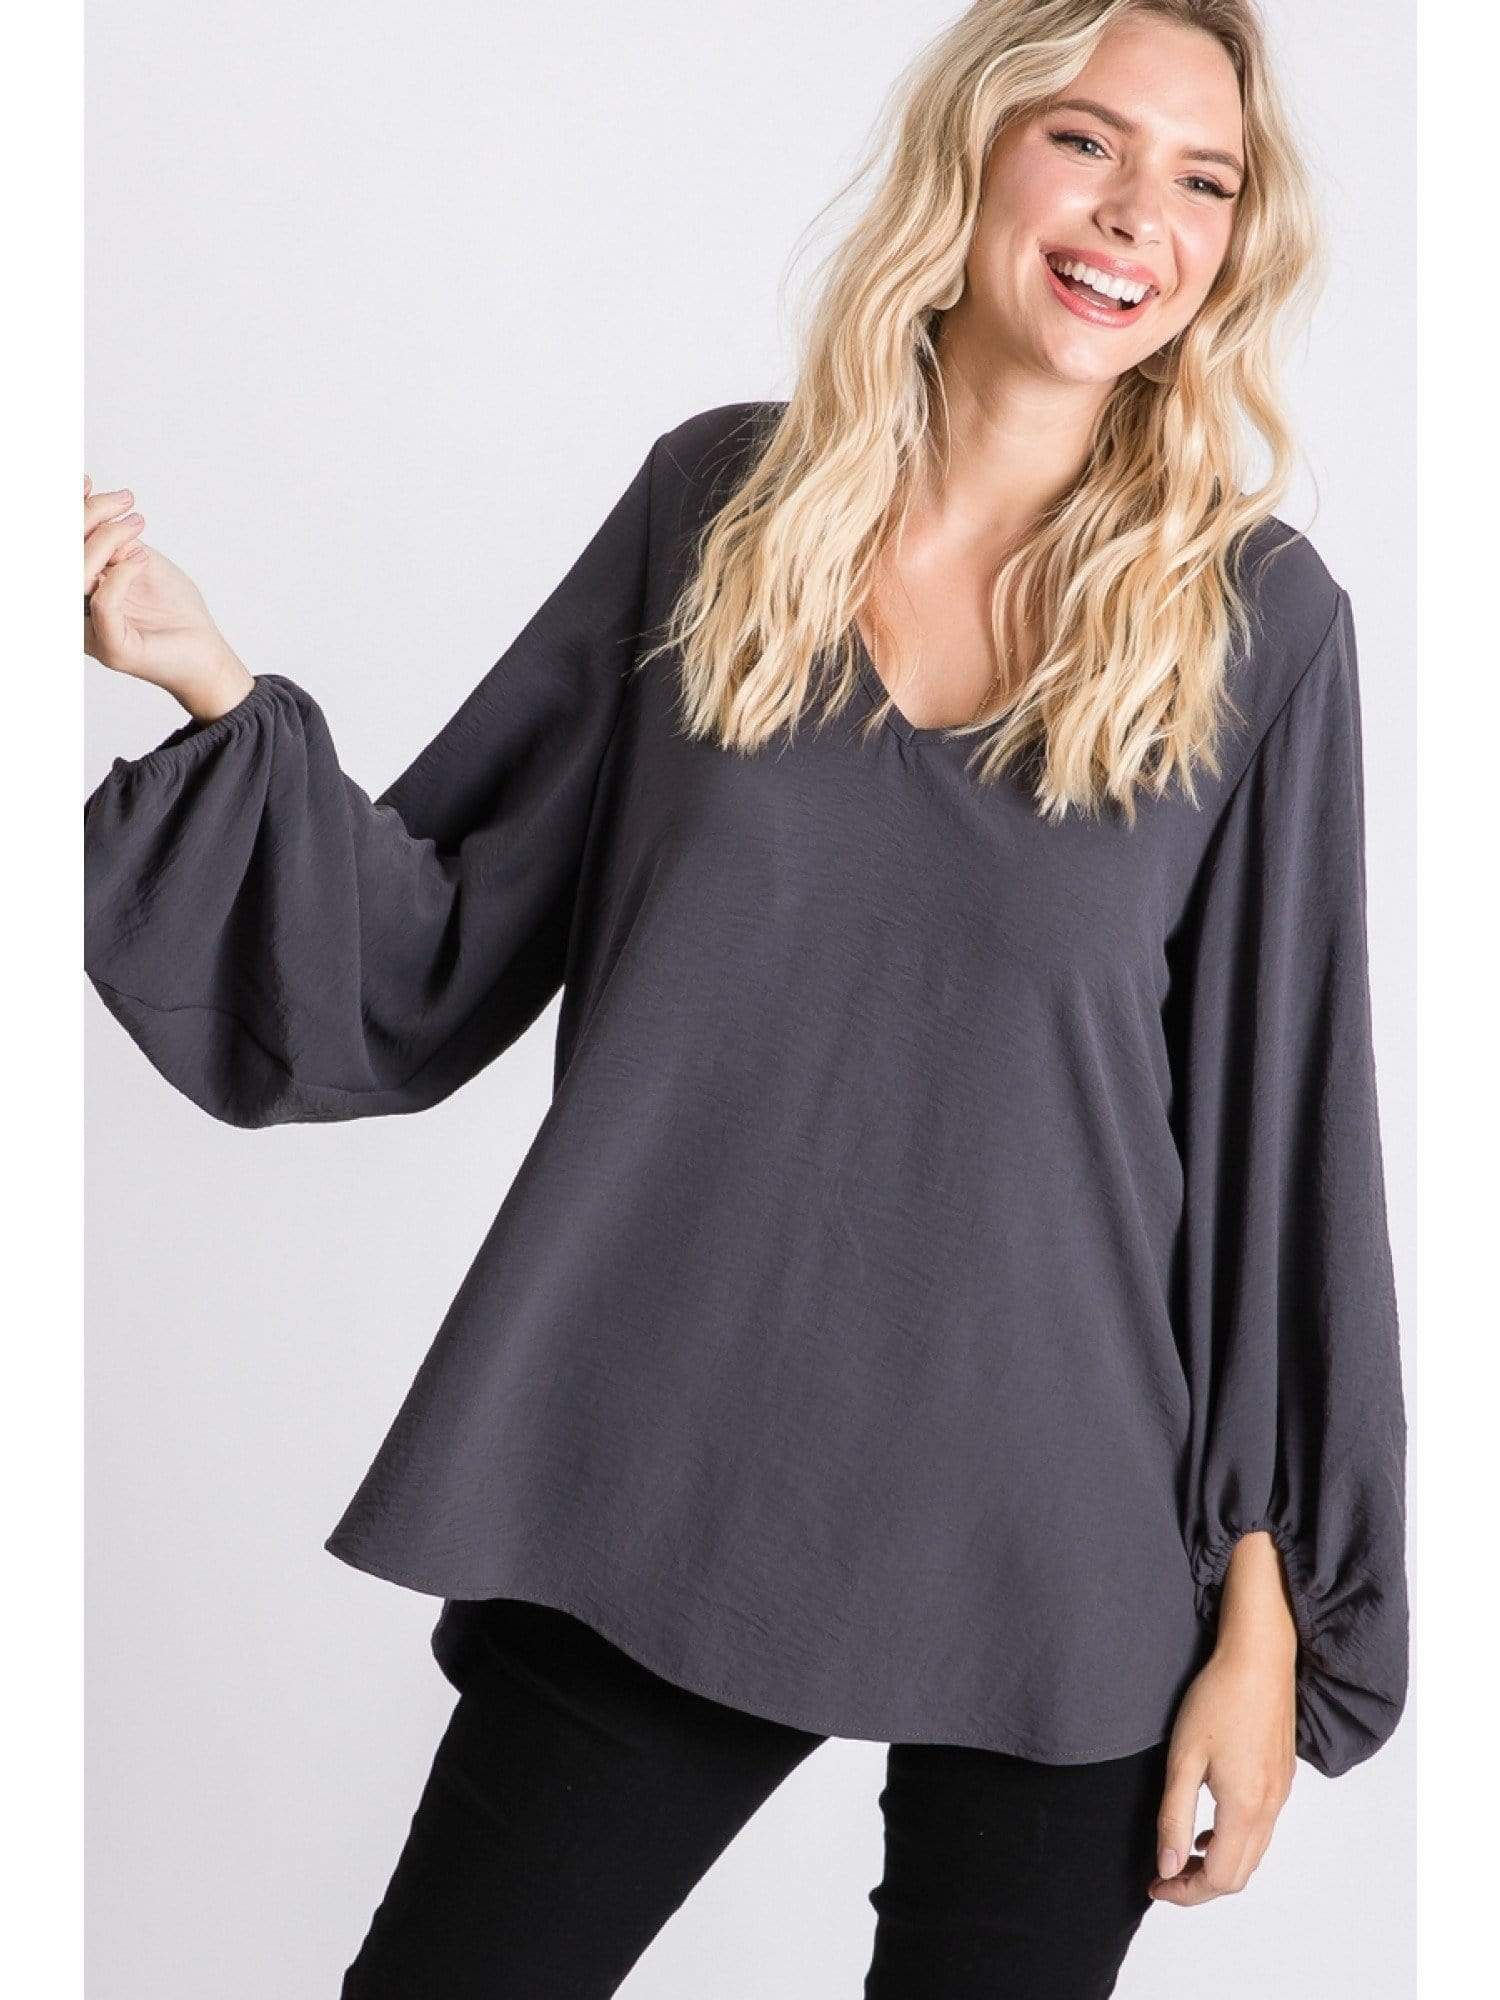 Long Sleeve V Neck Blouse - Charcoal